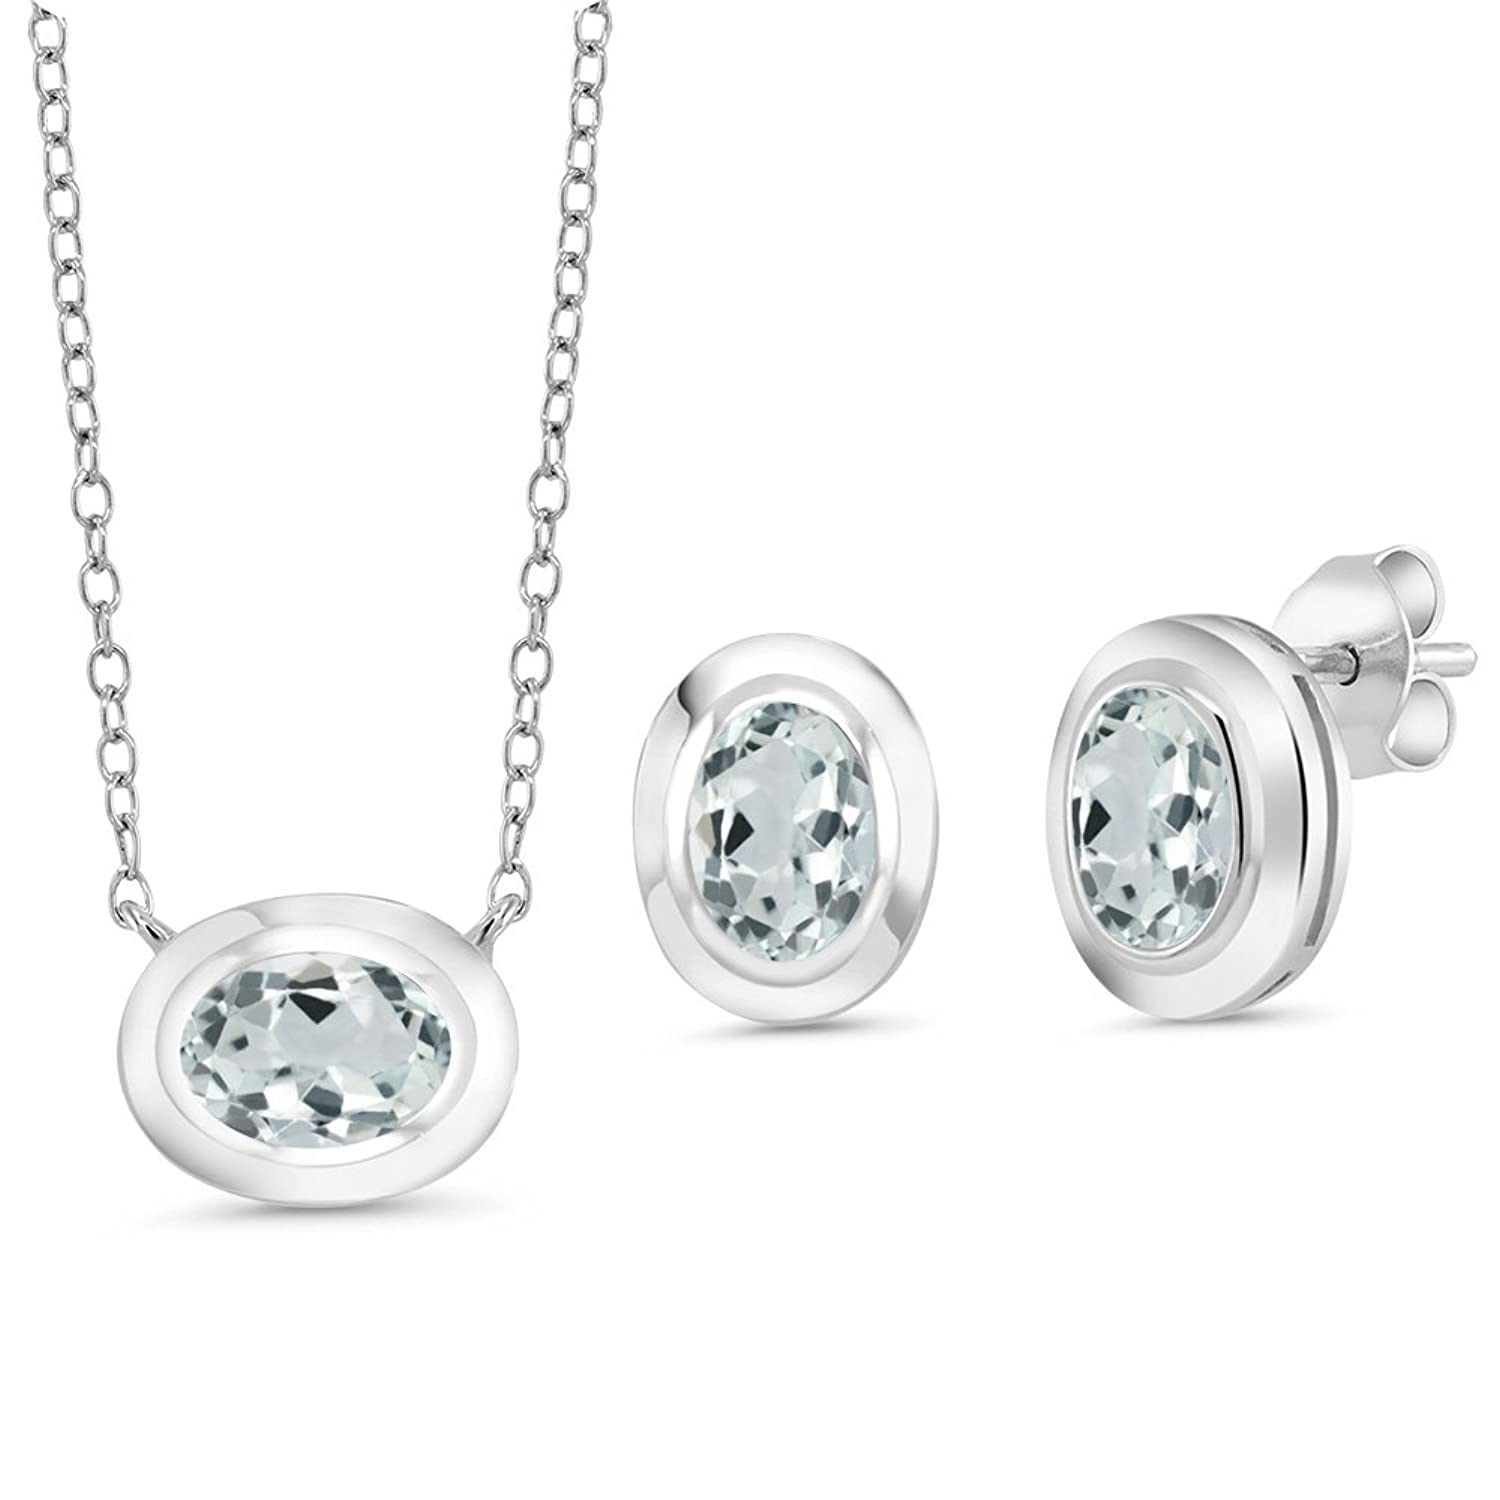 2.16 Ct Sky Blue Aquamarine 925 Sterling Silver Pendant Earrings Set With Chain